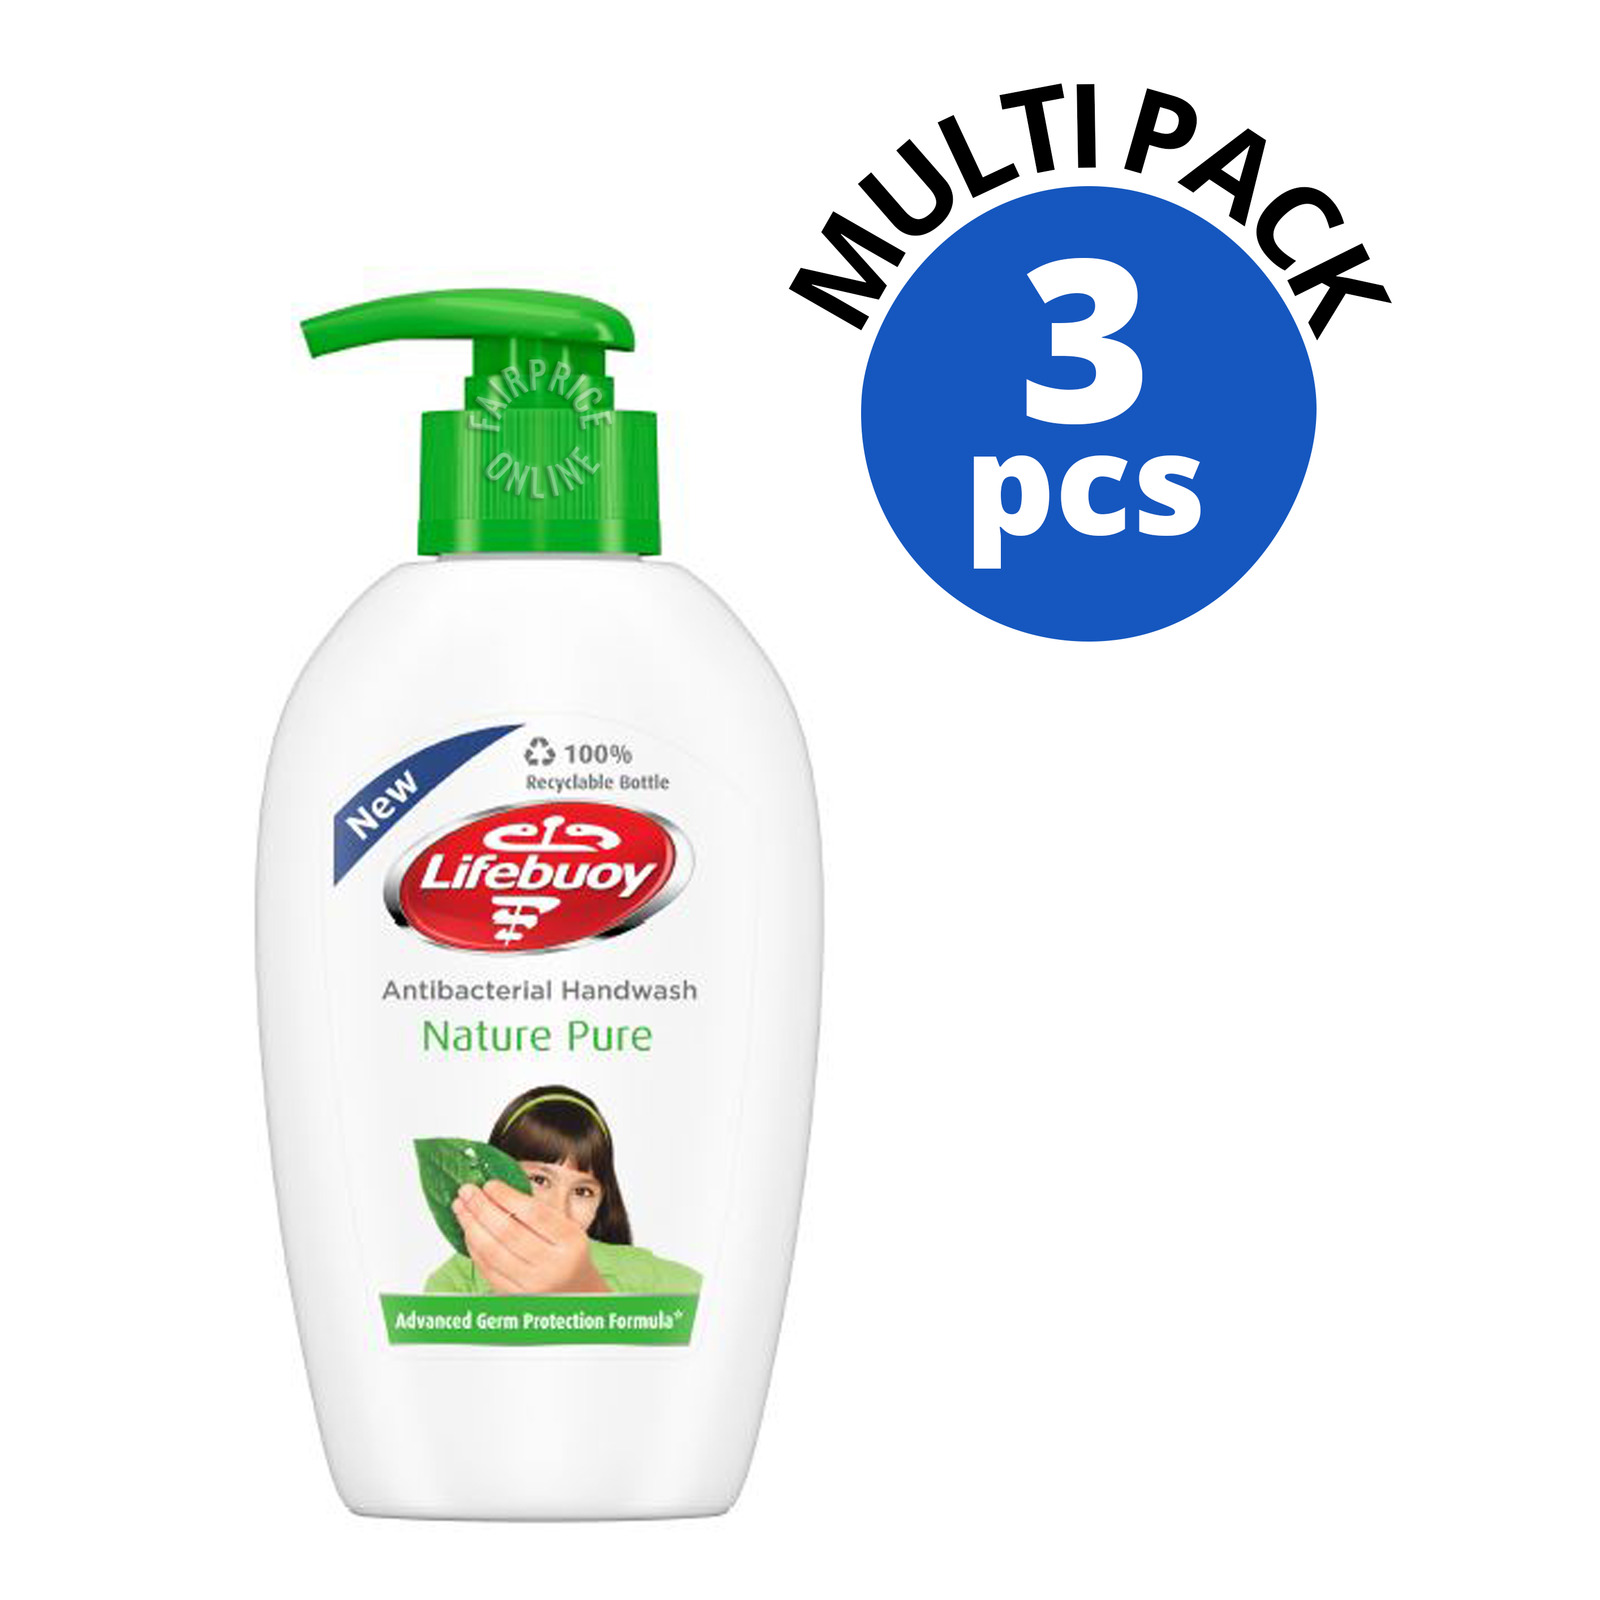 Lifebuoy Antibacterial Hand Wash - Nature Pure